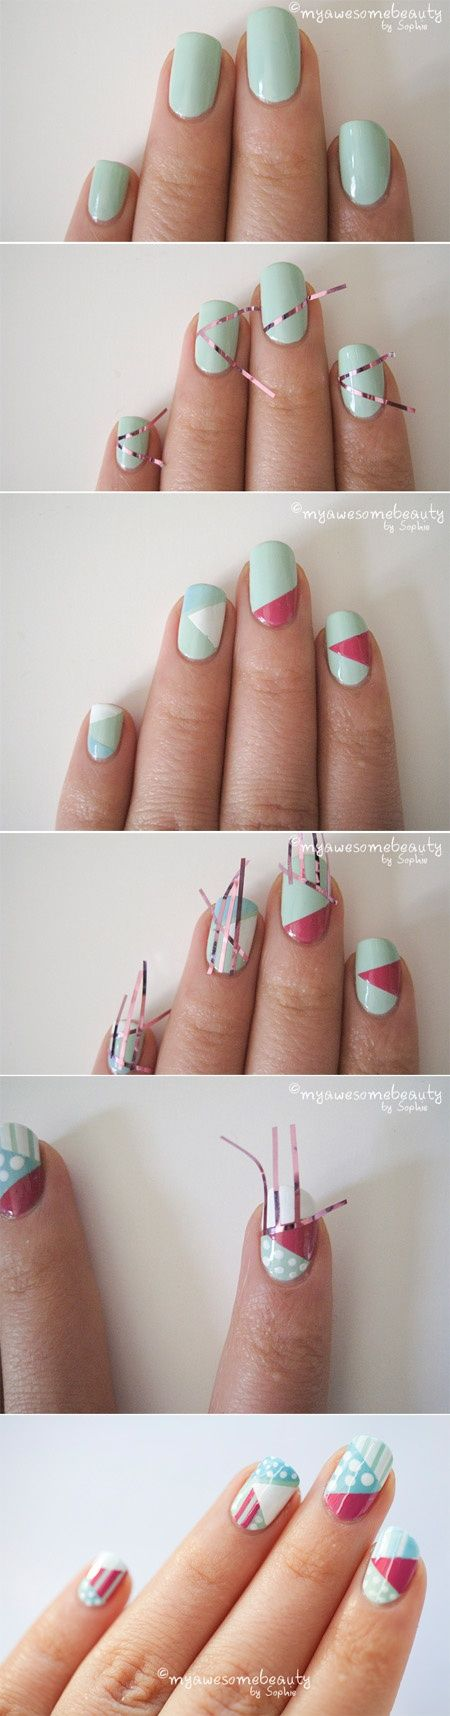 Cupcake nailart tutorial! #nails #nail #nagellack …